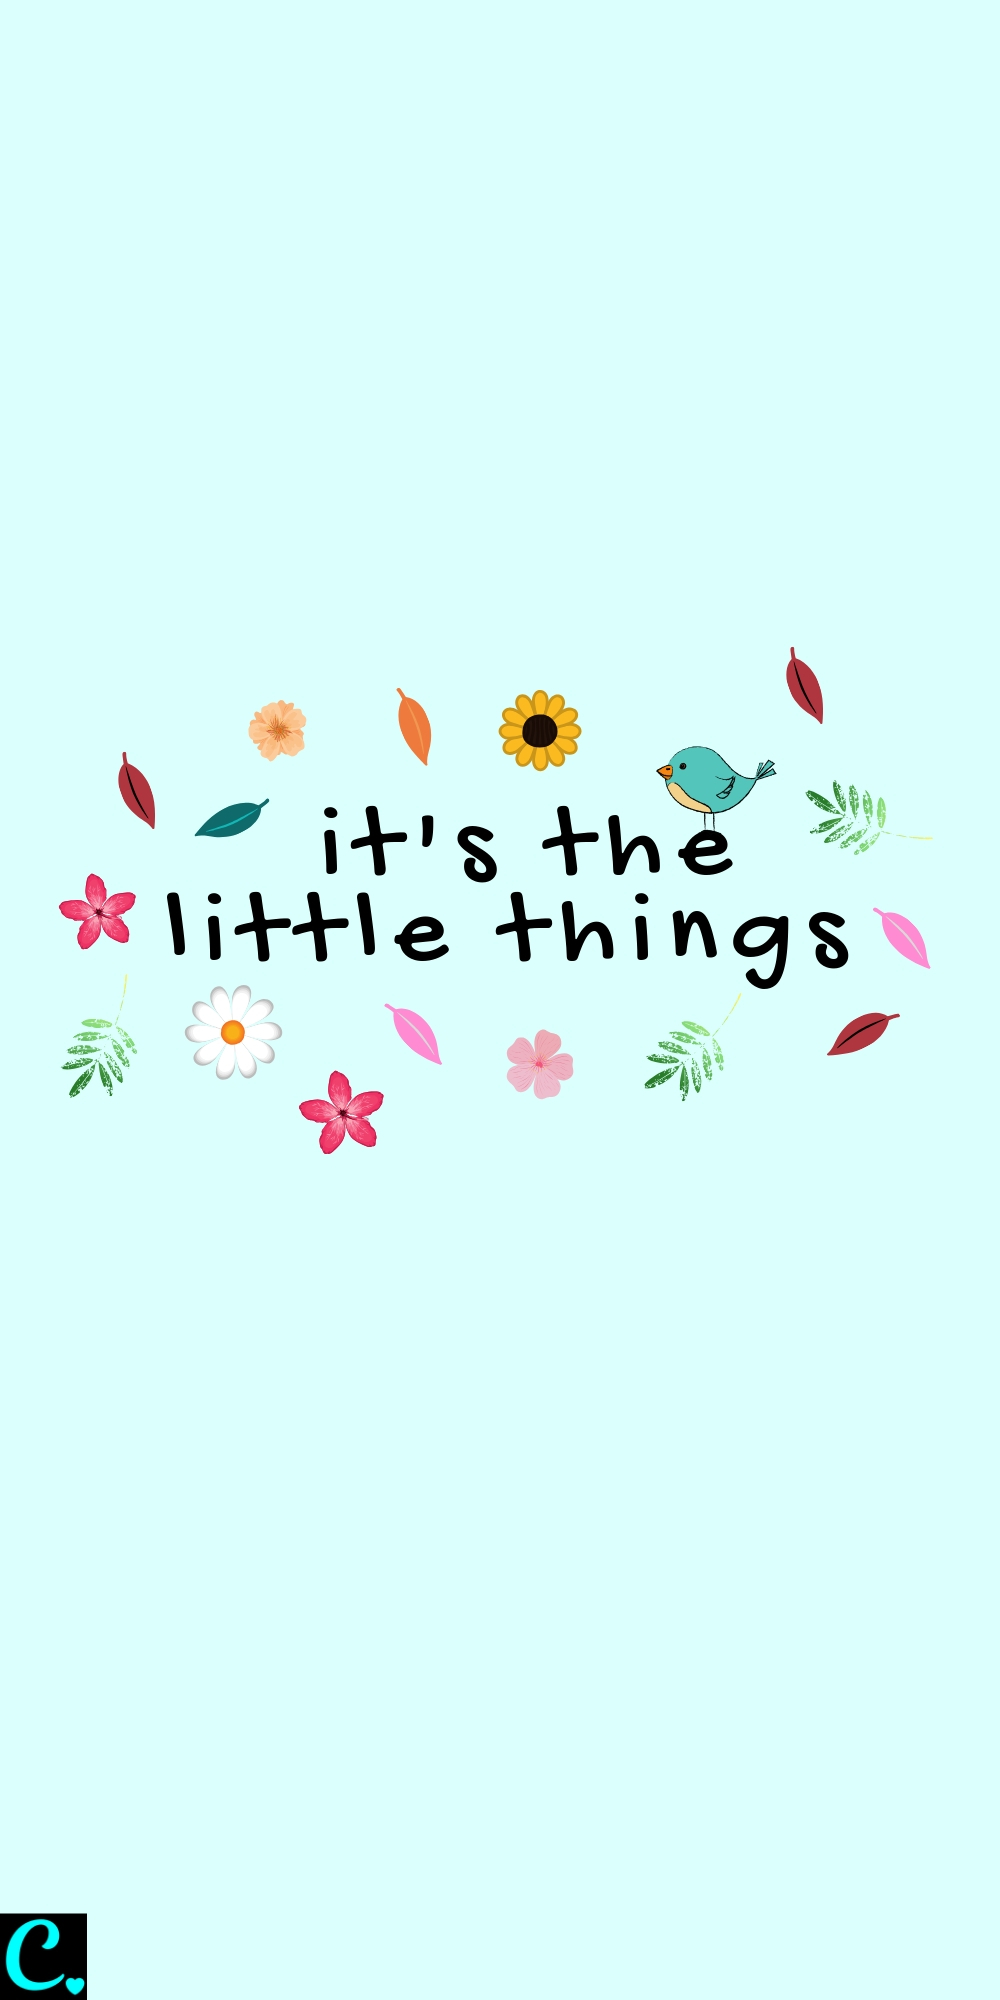 It's the little things quote | positive quote | inspirational quote | Happiness quotes #happinessquote #positivequote #inspirationalquote